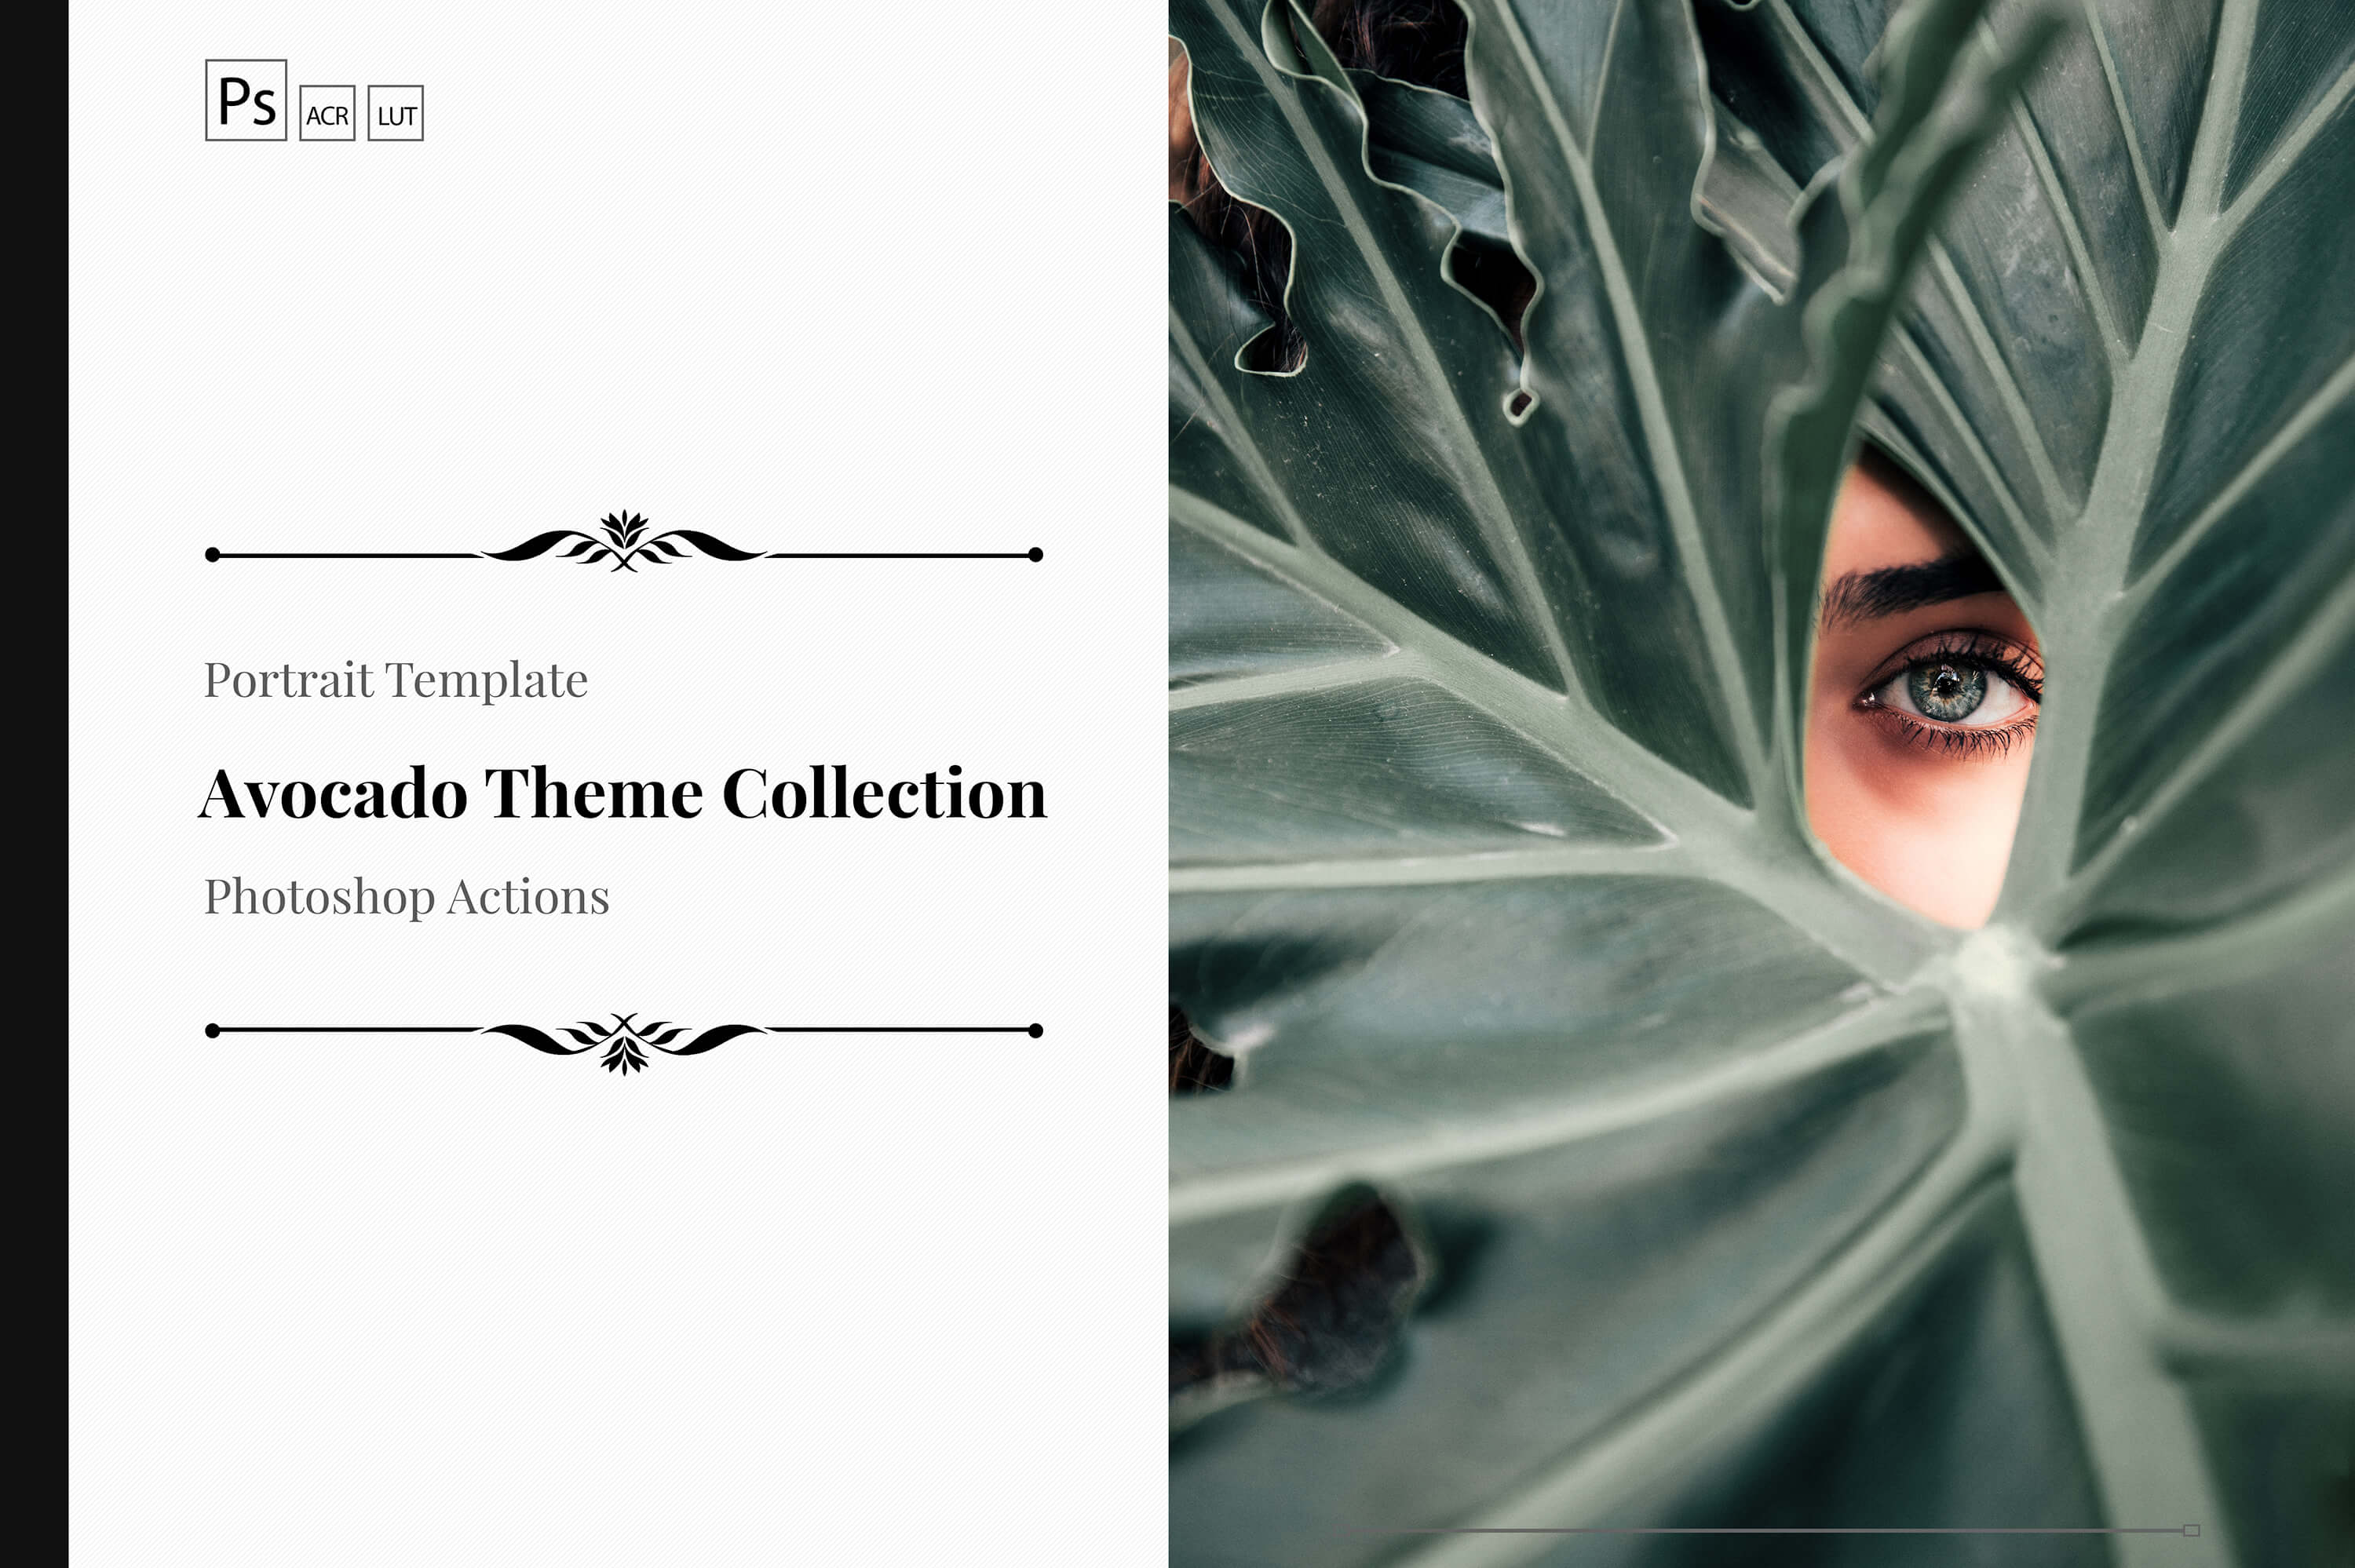 Neo Avocado Theme Collection PS Actions LUTs